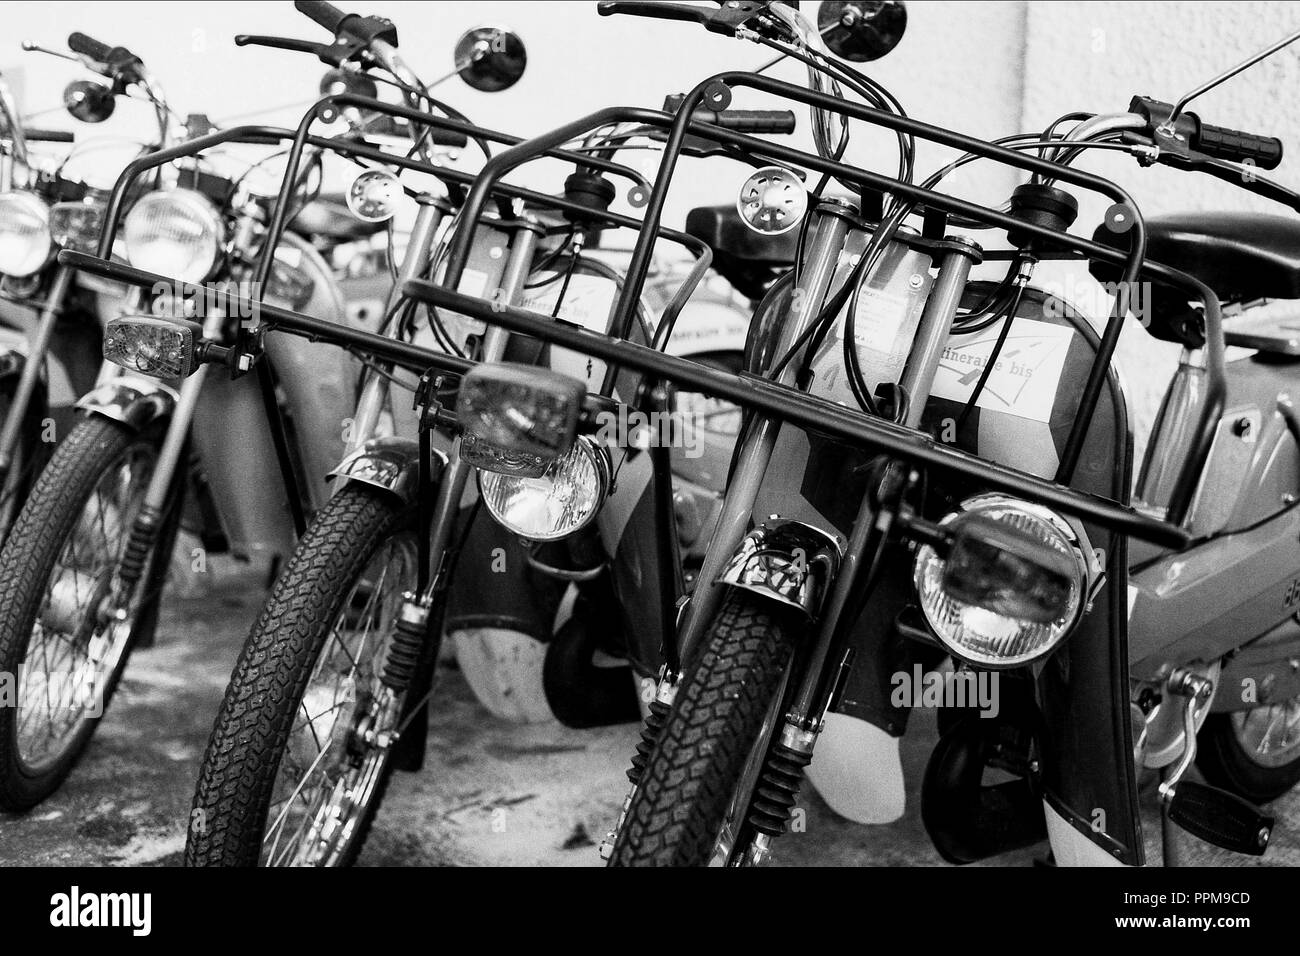 Itineraire Transport Lyon Itineraire Bis Humanity Association Lyon France Stock Photo